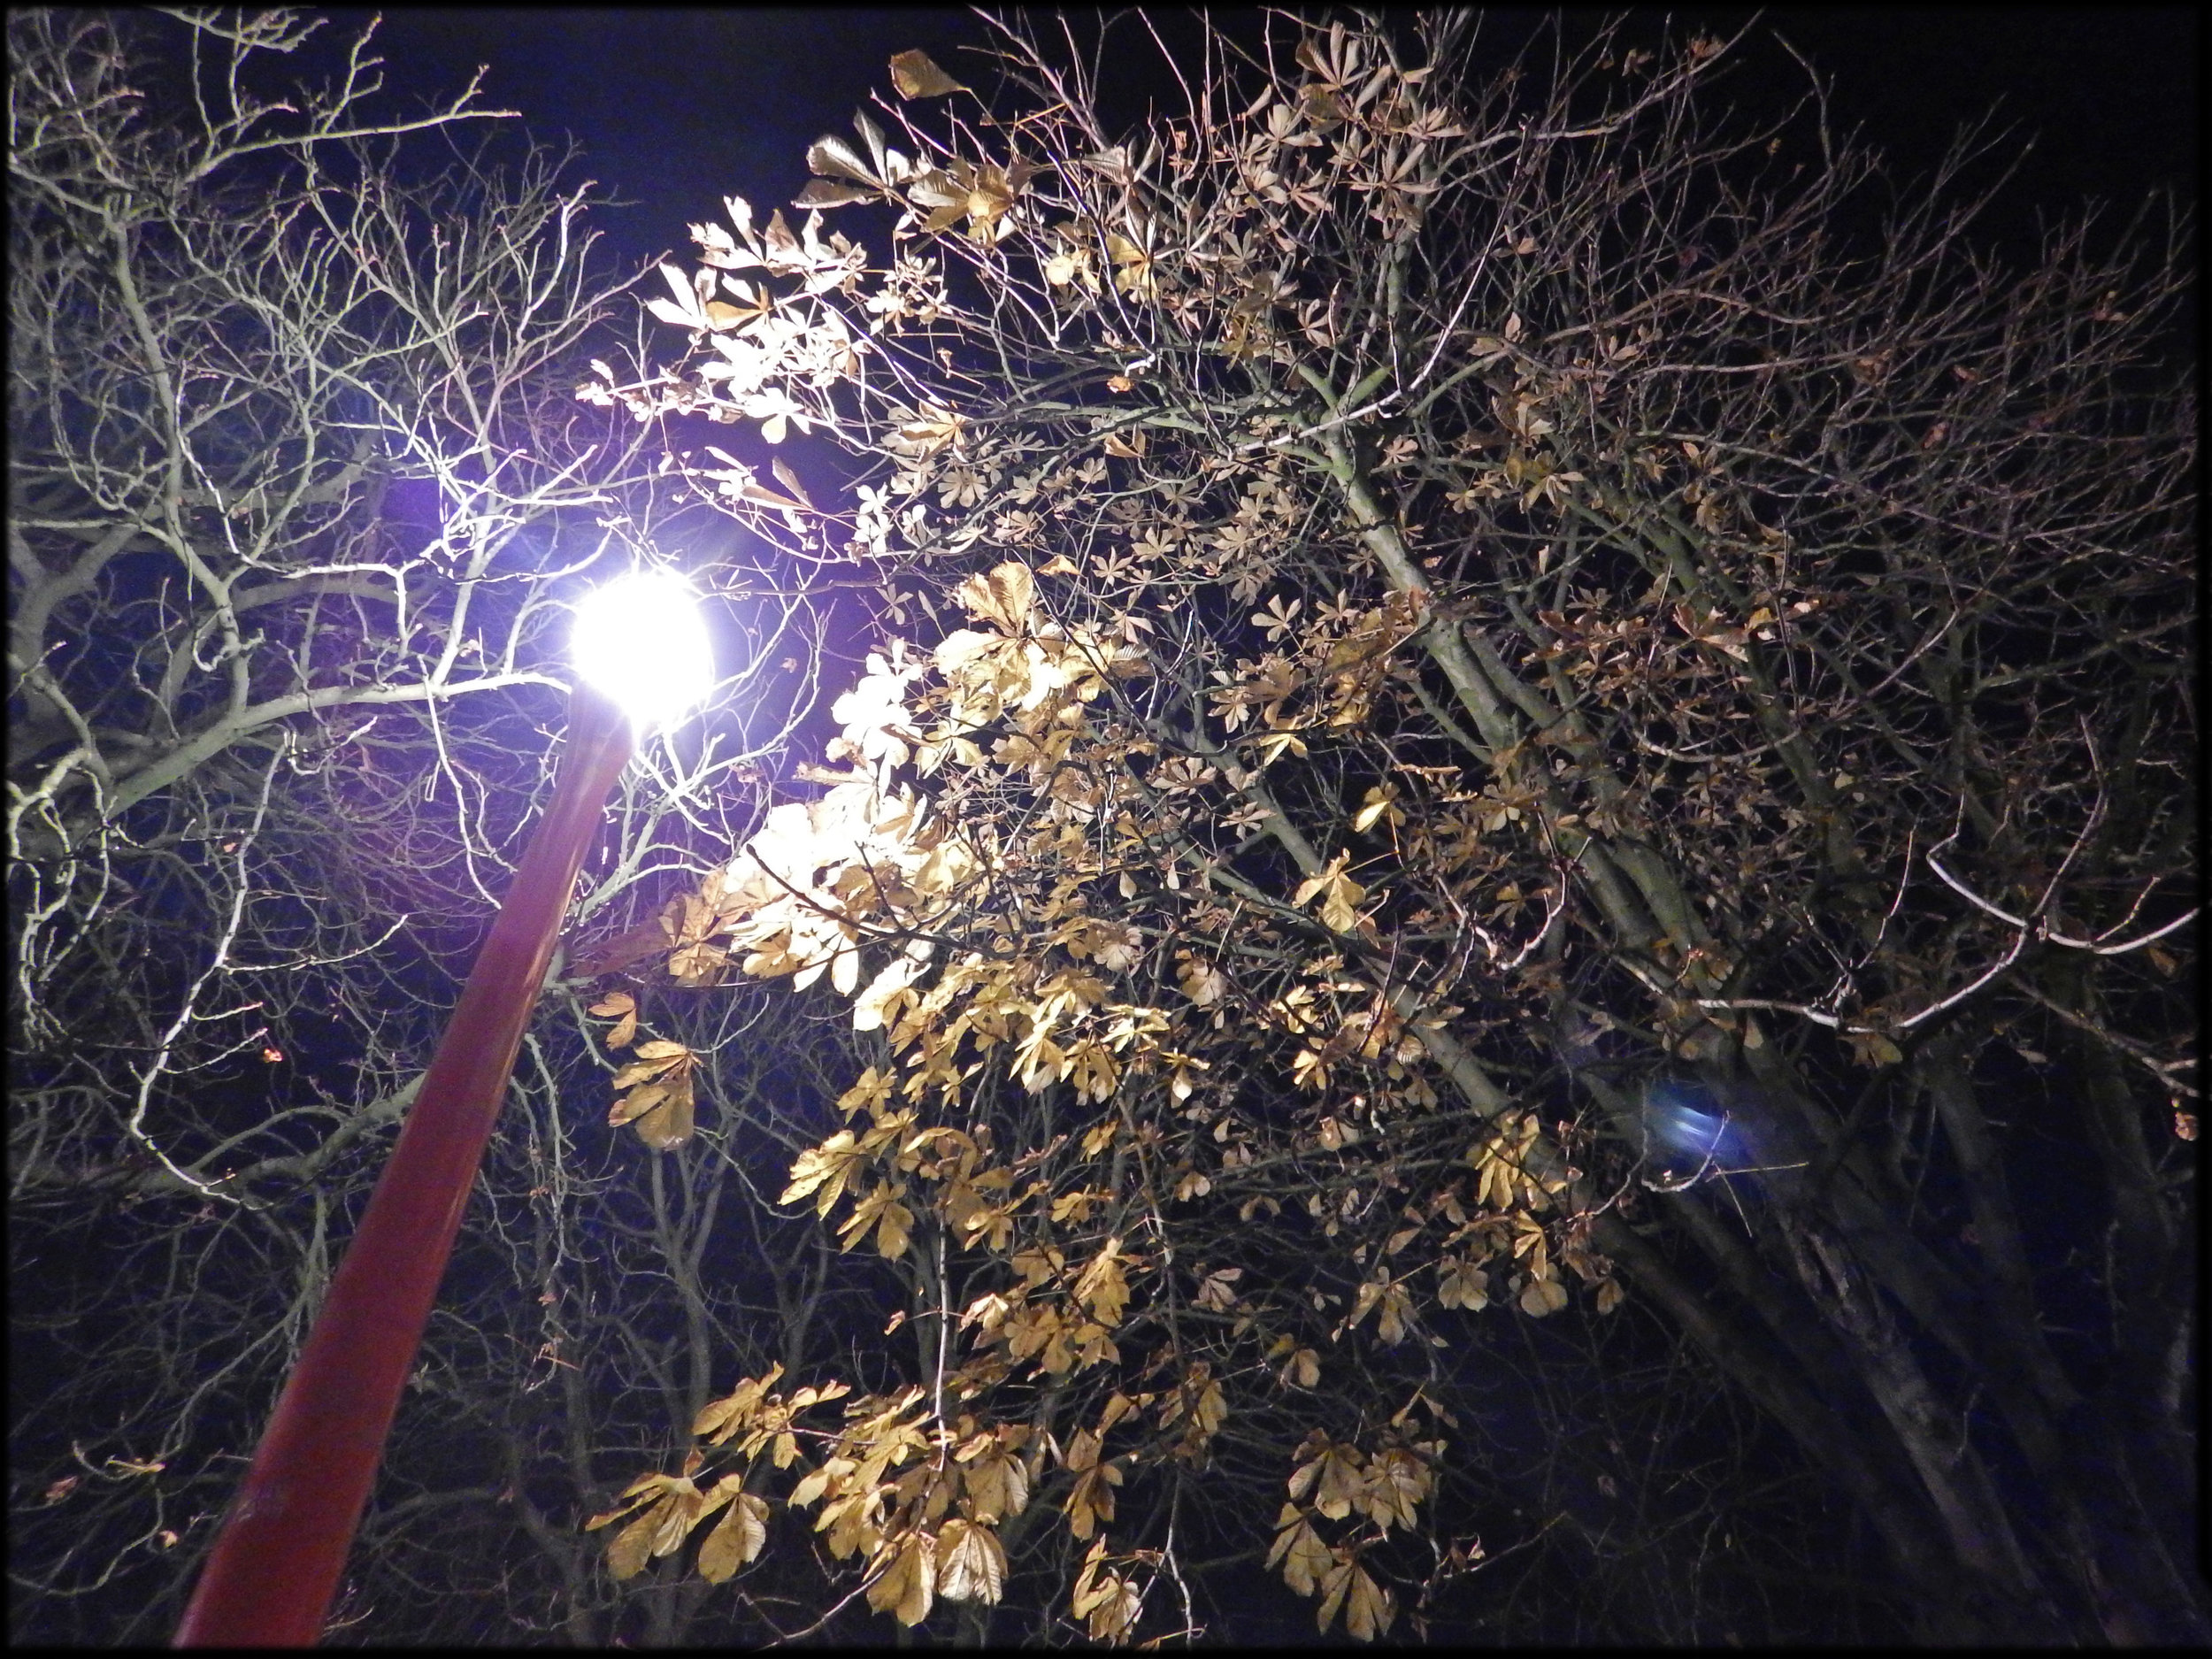 Effet_de_la_pollution_lumineuse_sur_l'arbre_urbain_Effect_of_light_pollution_on_urban_trees_and_dead_leaves_04.jpg